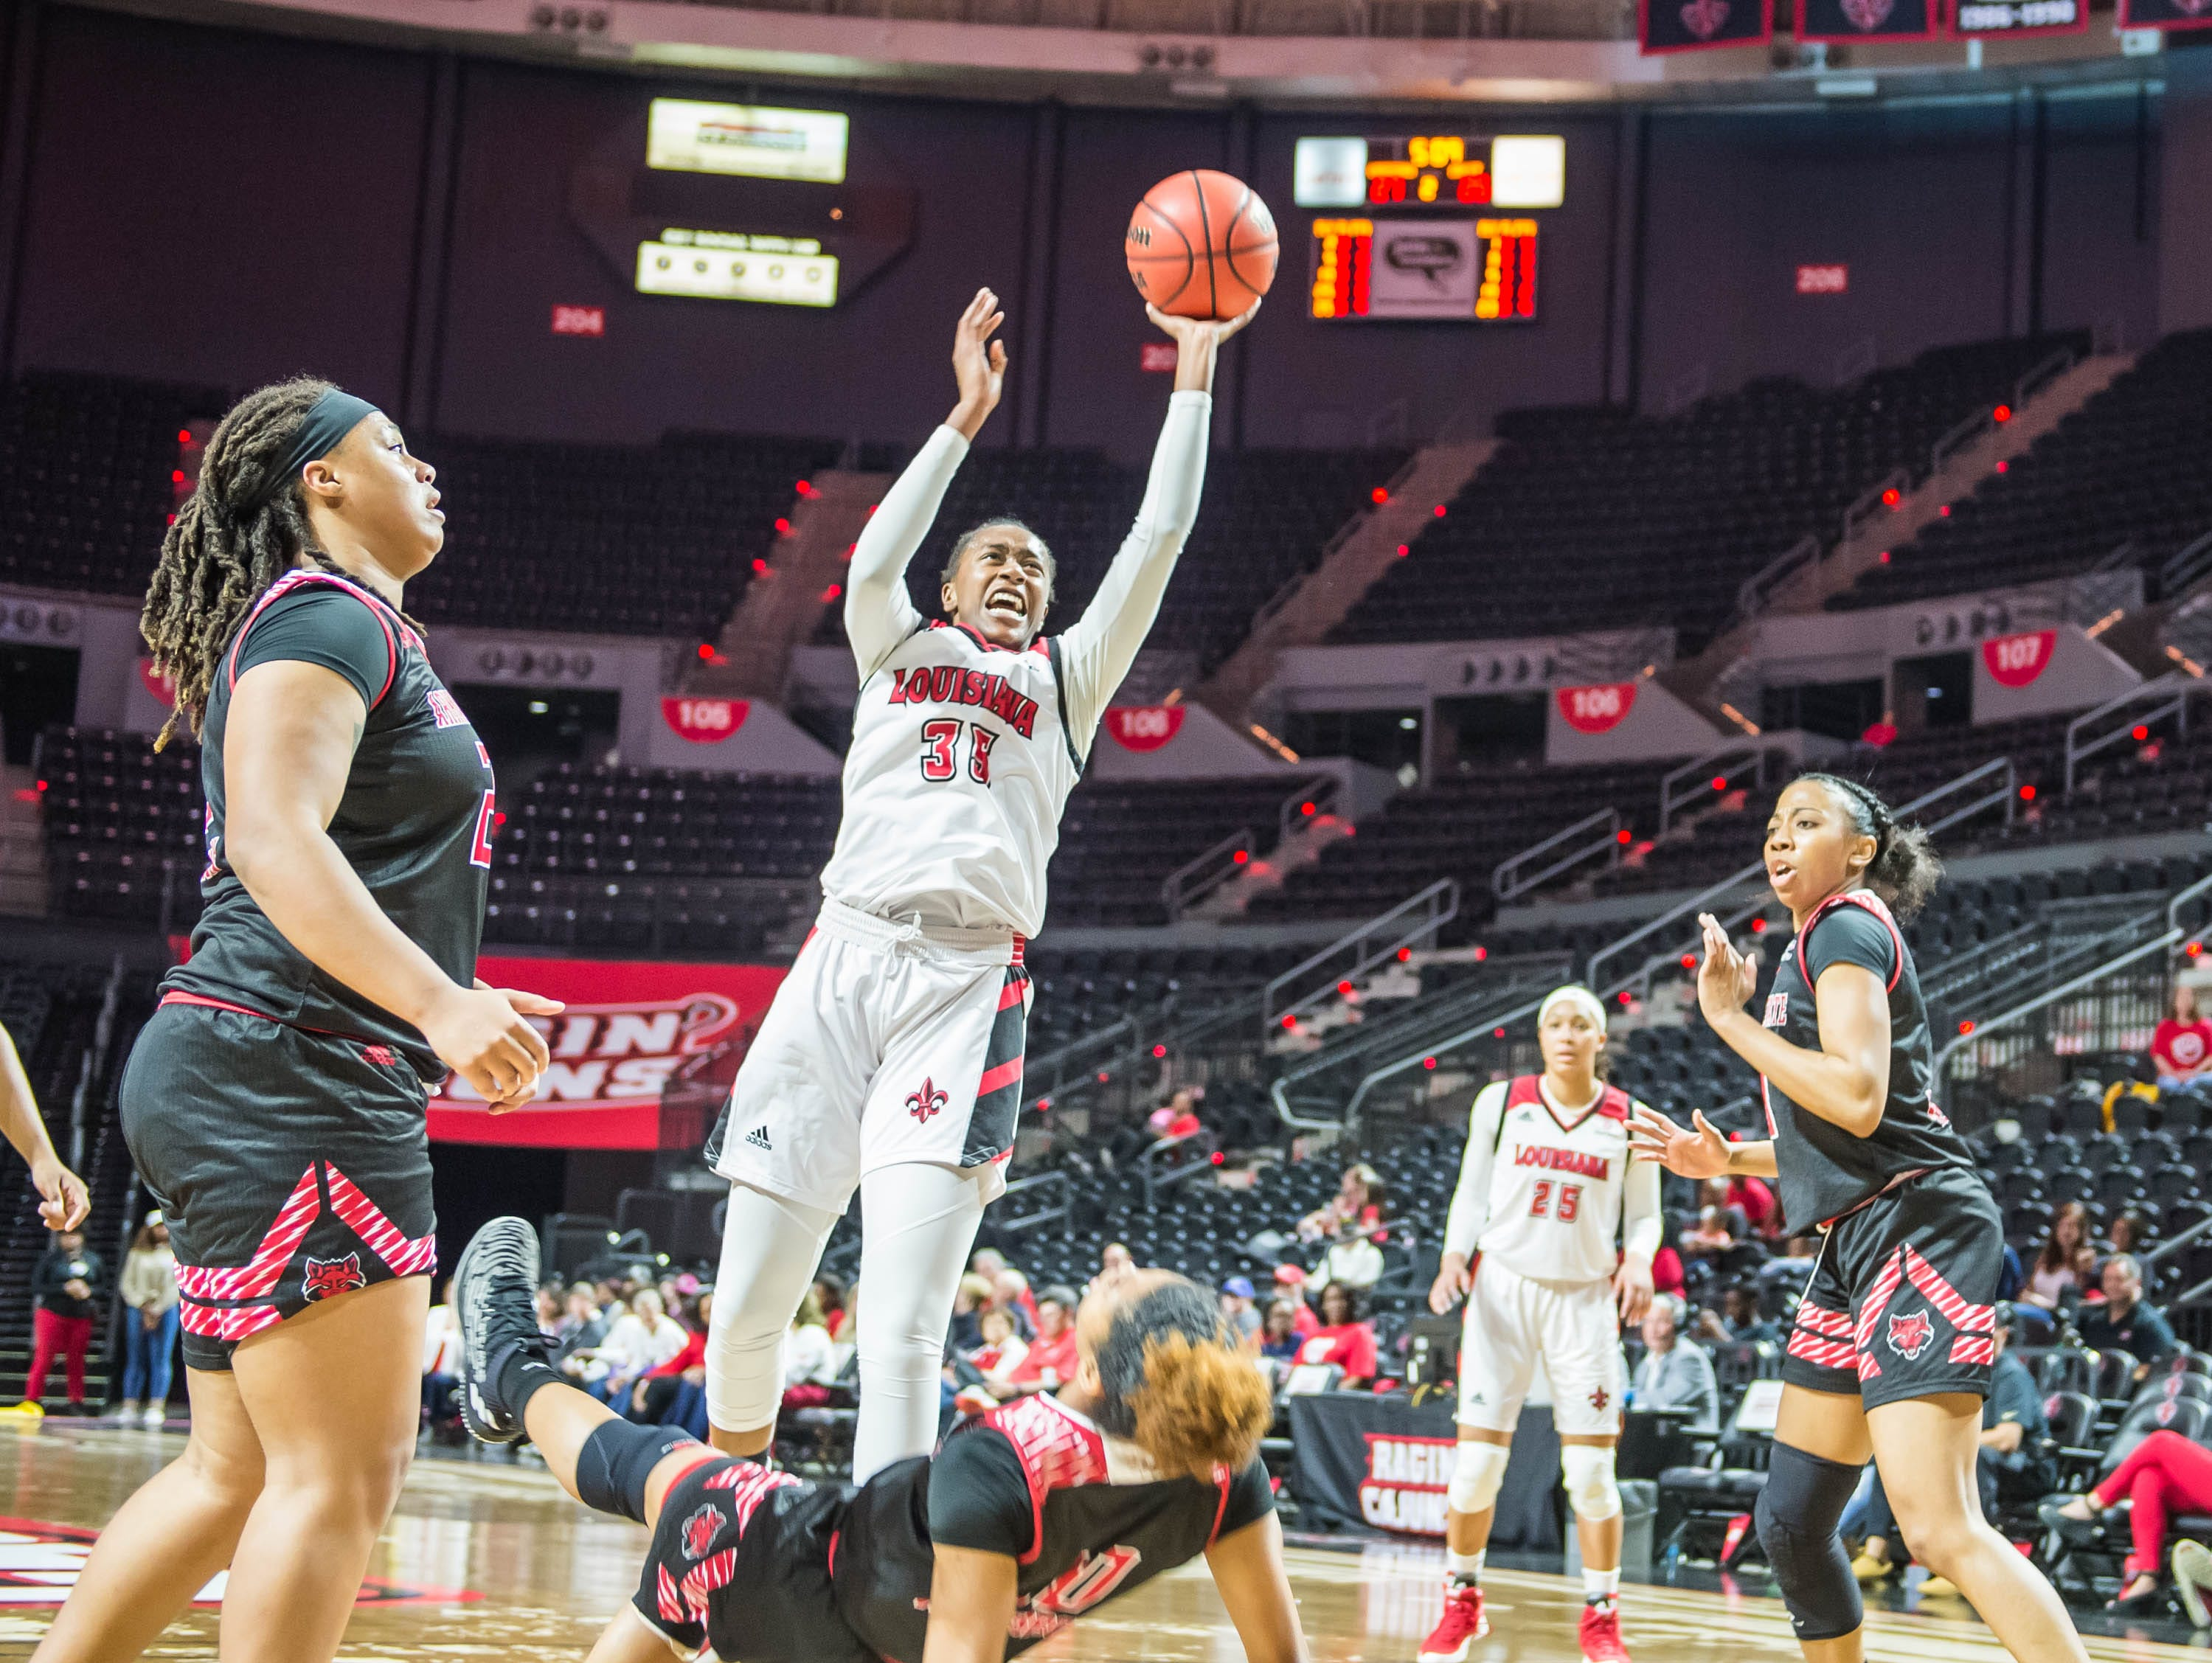 Cajuns center Ty'Reona Doucet (35) draws a charging call while going up for the layup as the Cajuns women's basketball team plays the Arkansas State Red Wolves at the Cajundome on Saturday, March 9, 2019.